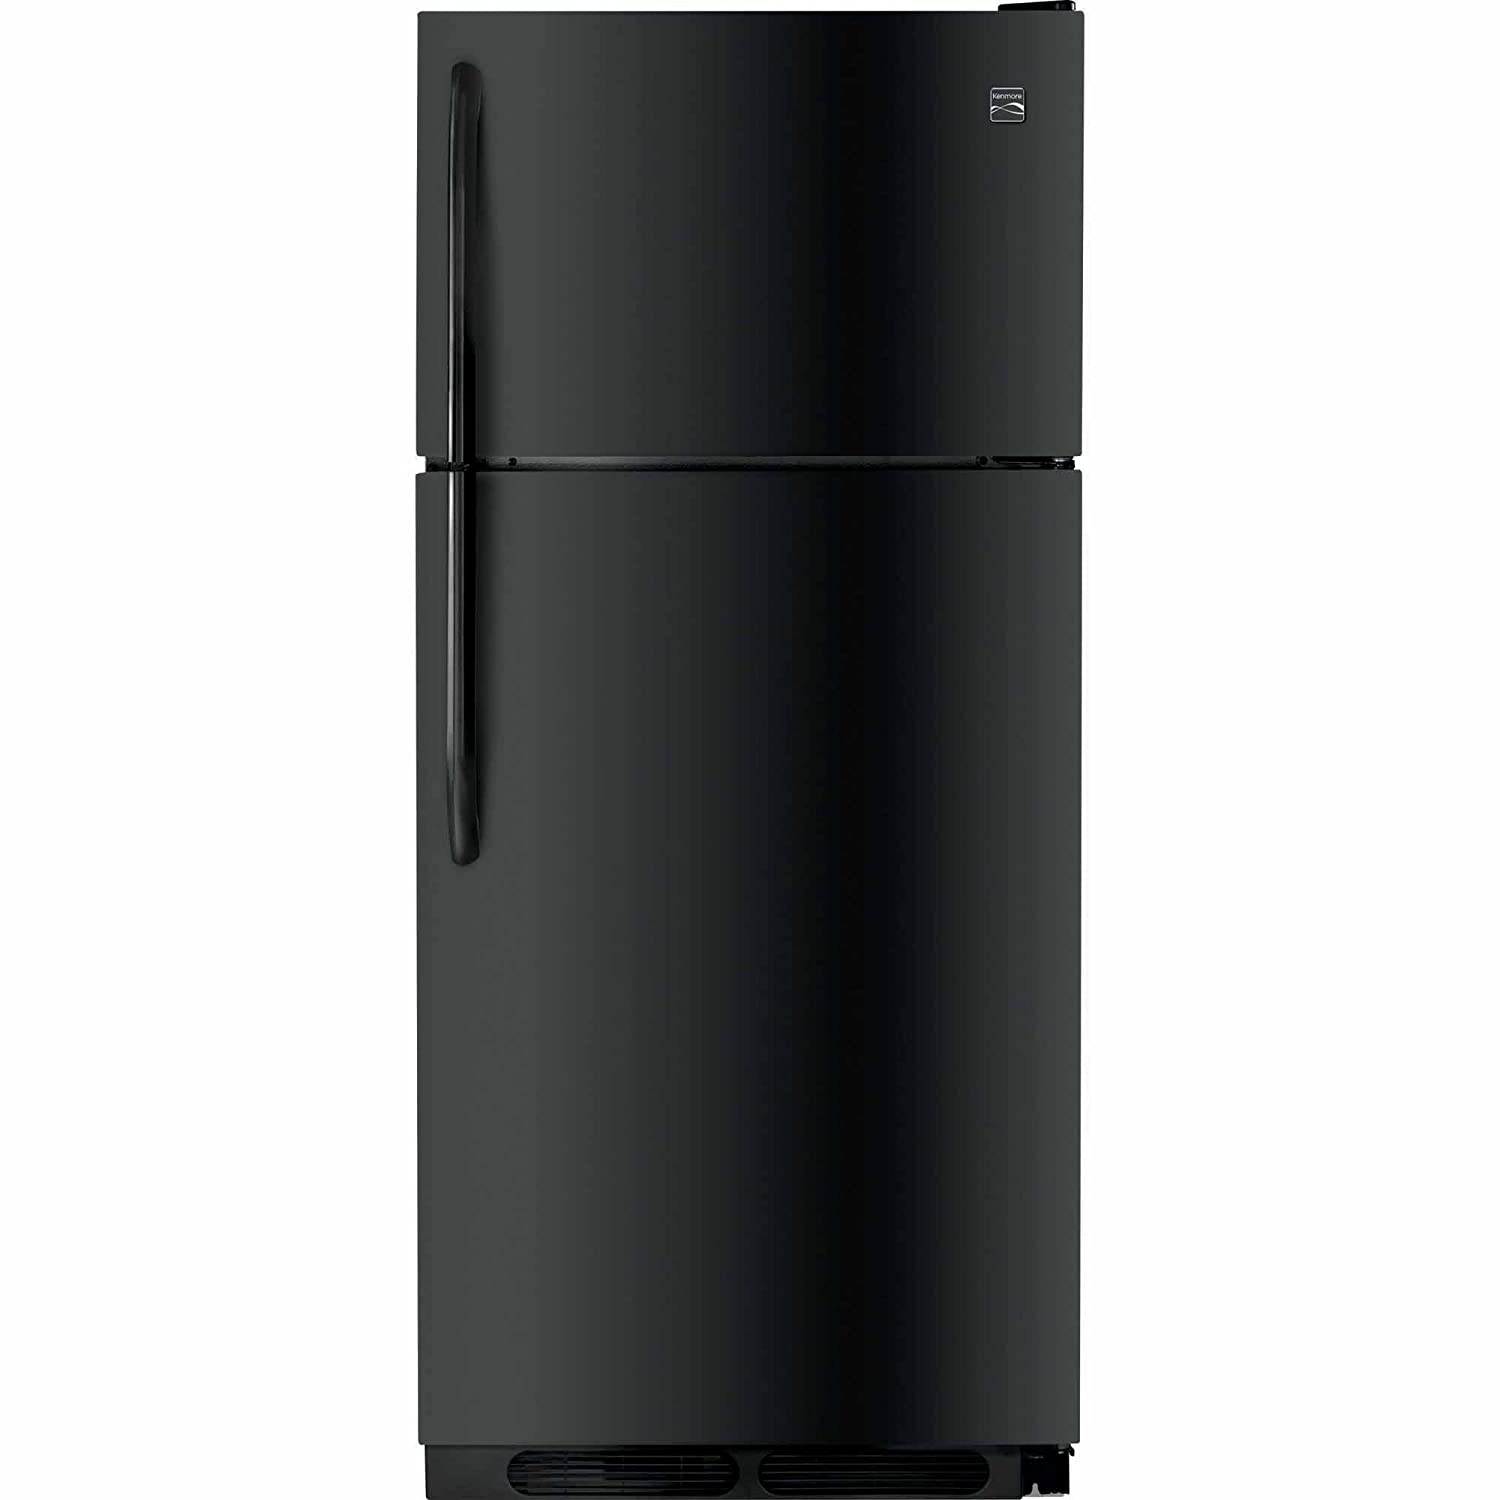 Kenmore 60409 16.3 cu. ft. Top-Freezer Refrigerator in Black, includes delivery and hookup (Available in select cities only) 04660409